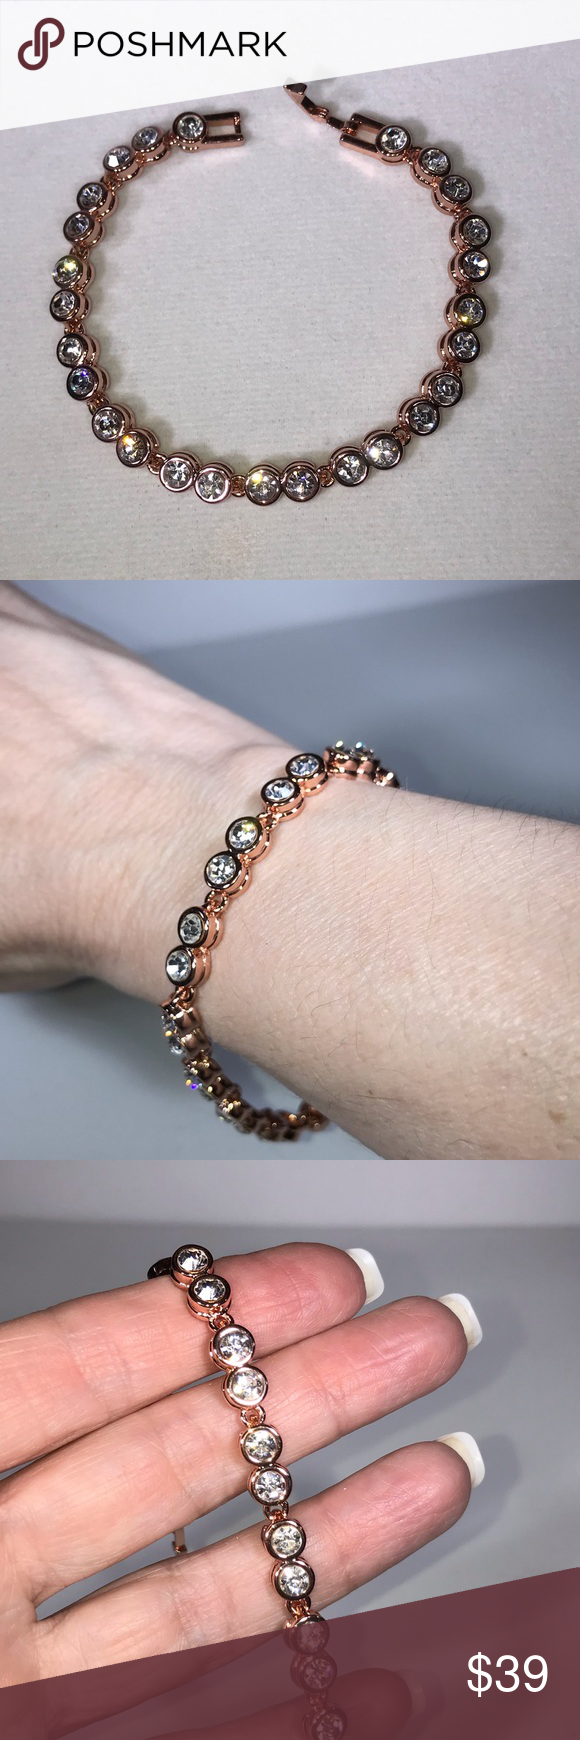 Rose Gold Plated Swarovski Crystal Tennis Bracelet In 2020 Swarovski Crystals Womens Jewelry Bracelets Boutique Jewelry